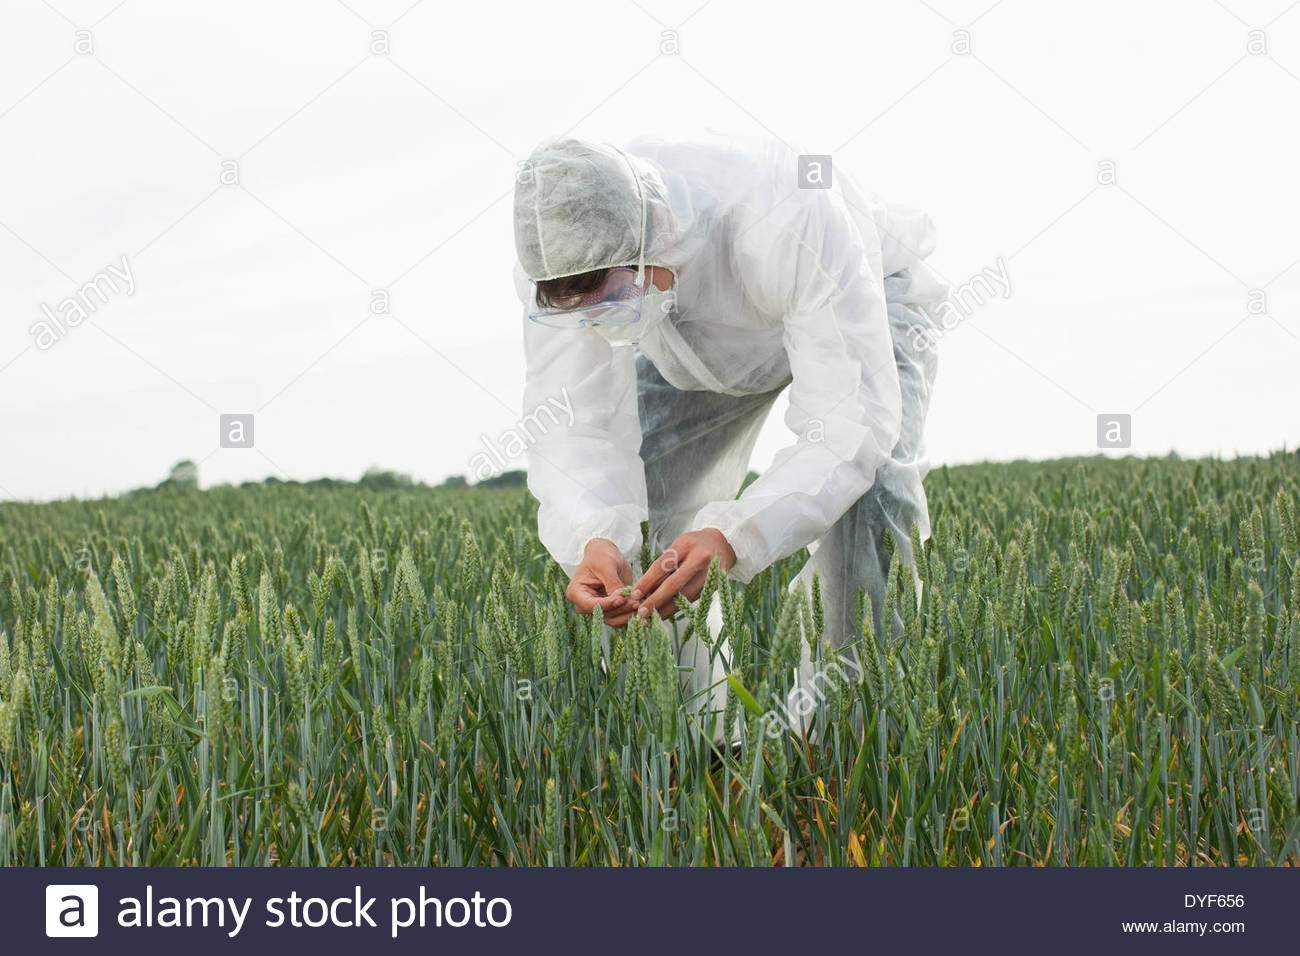 Scientist in protective gear examining plants - Stock Image